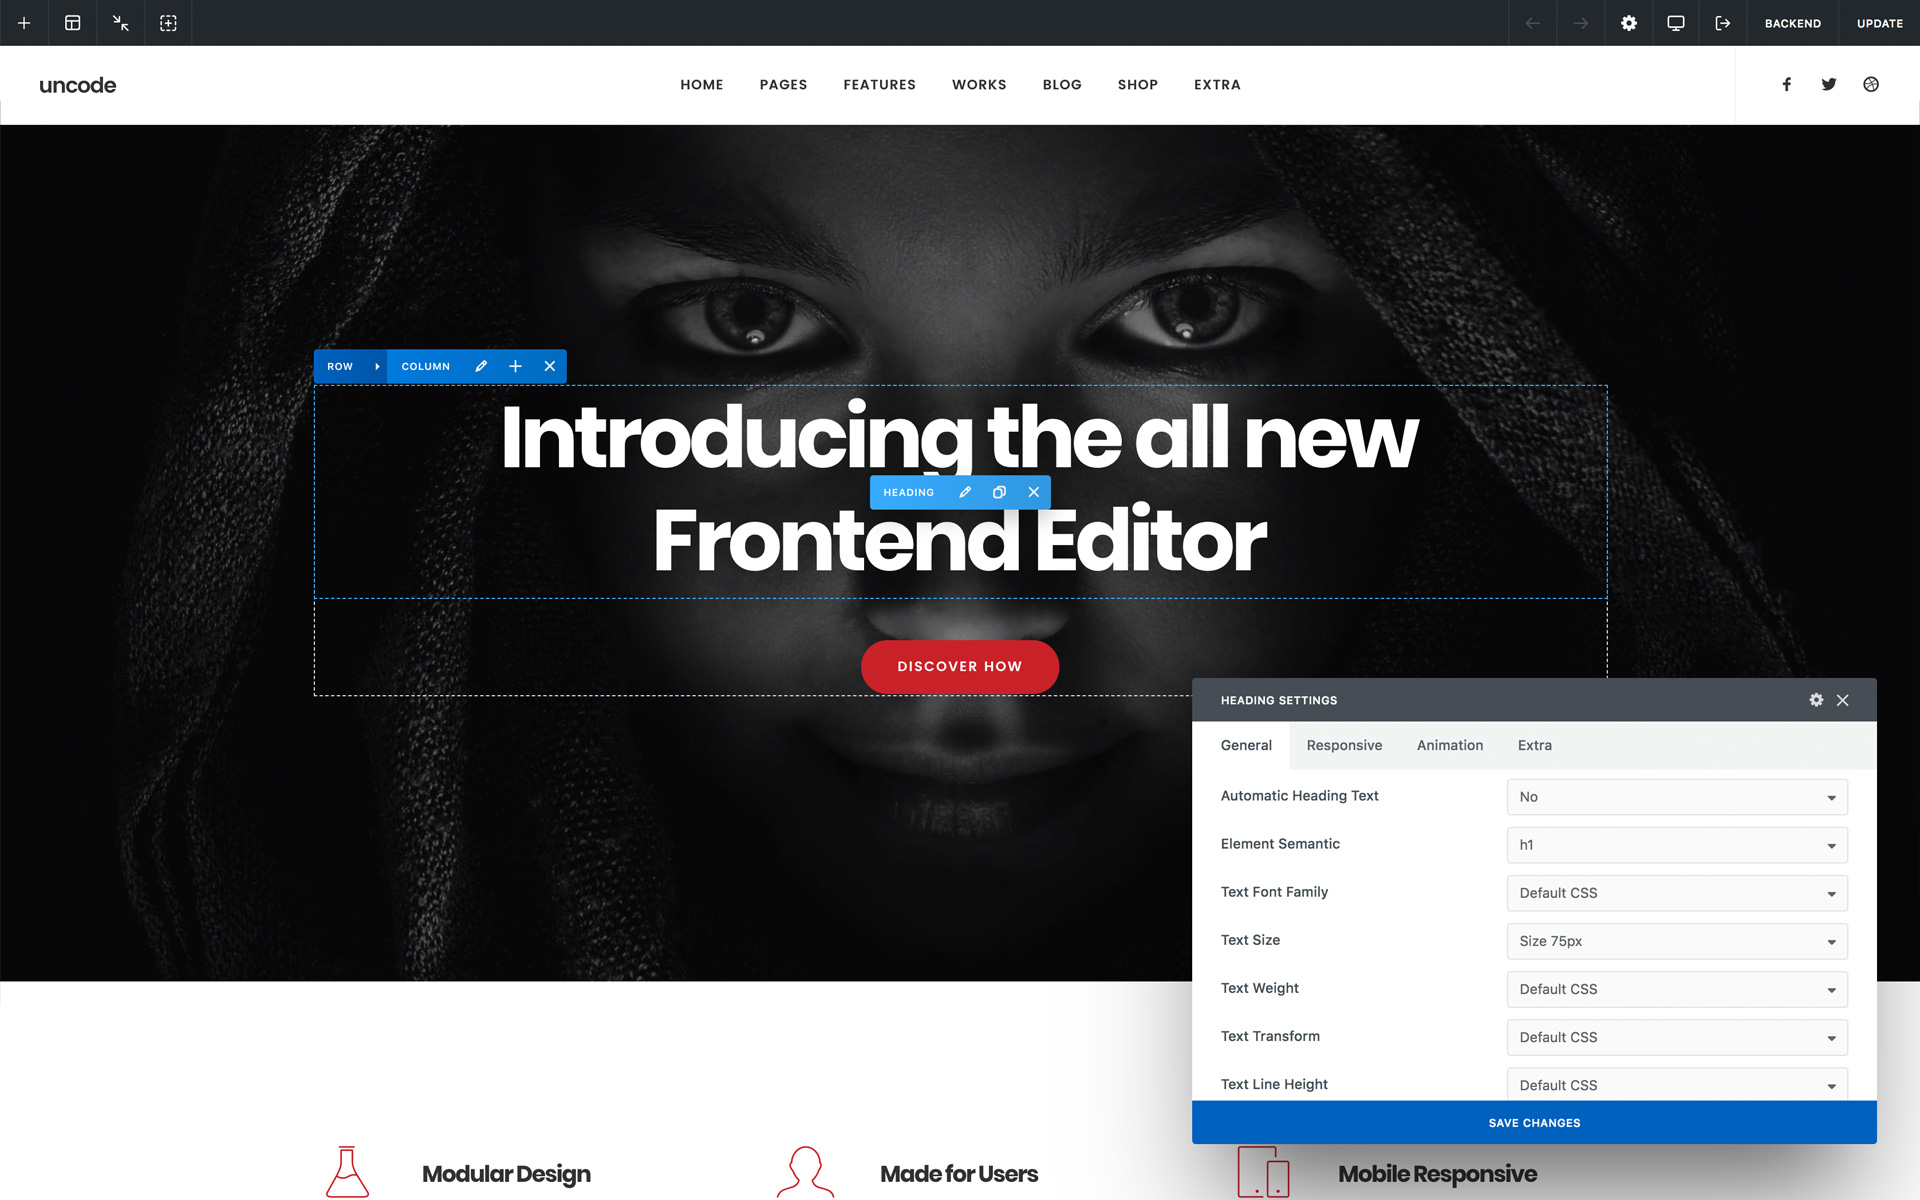 Uncode Frontend Editor